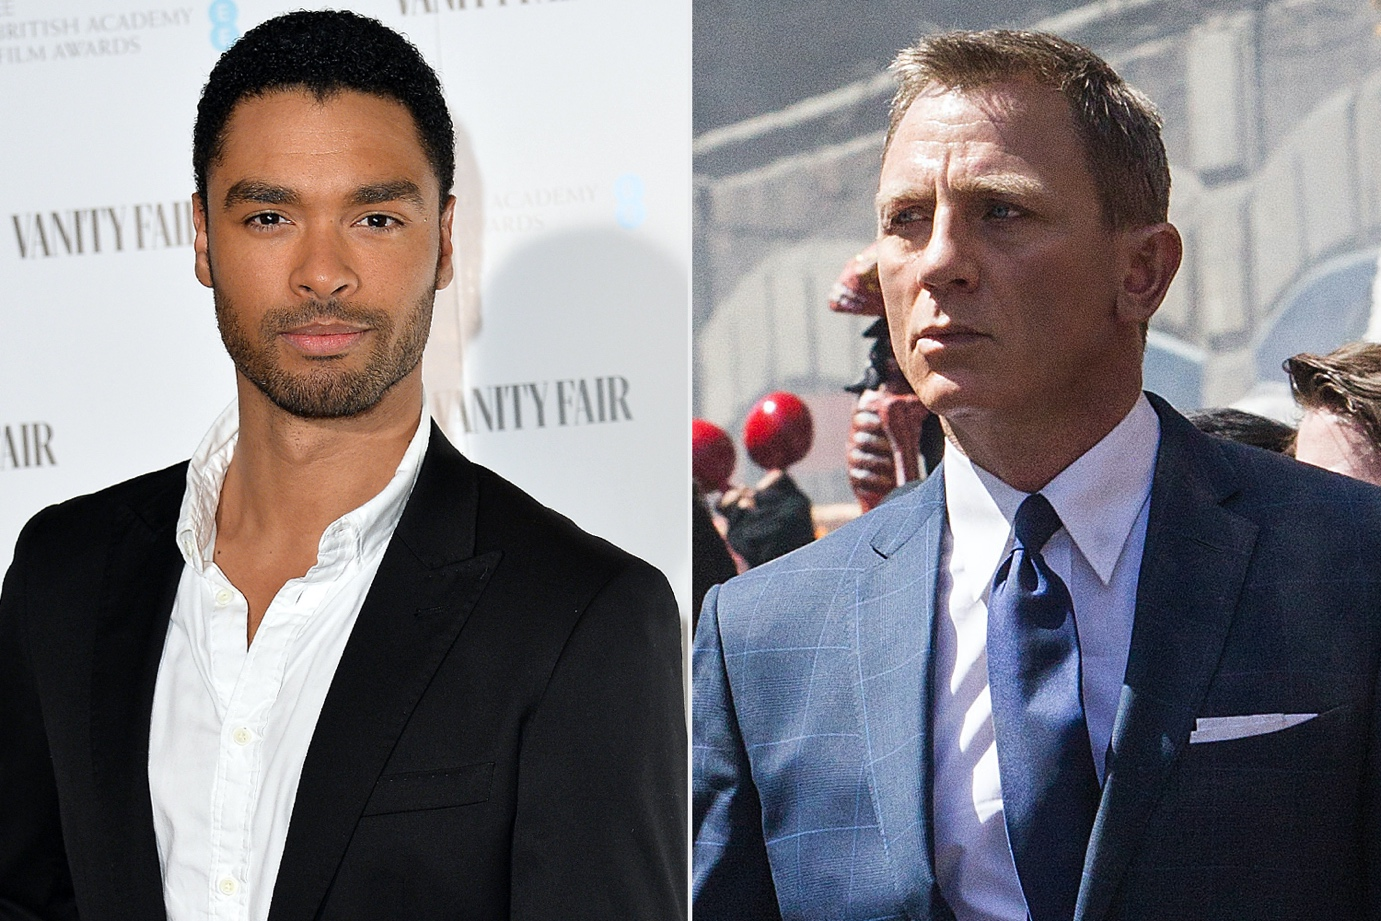 Bridgerton's Regé-Jean Page addresses James Bond rumors | EW.com